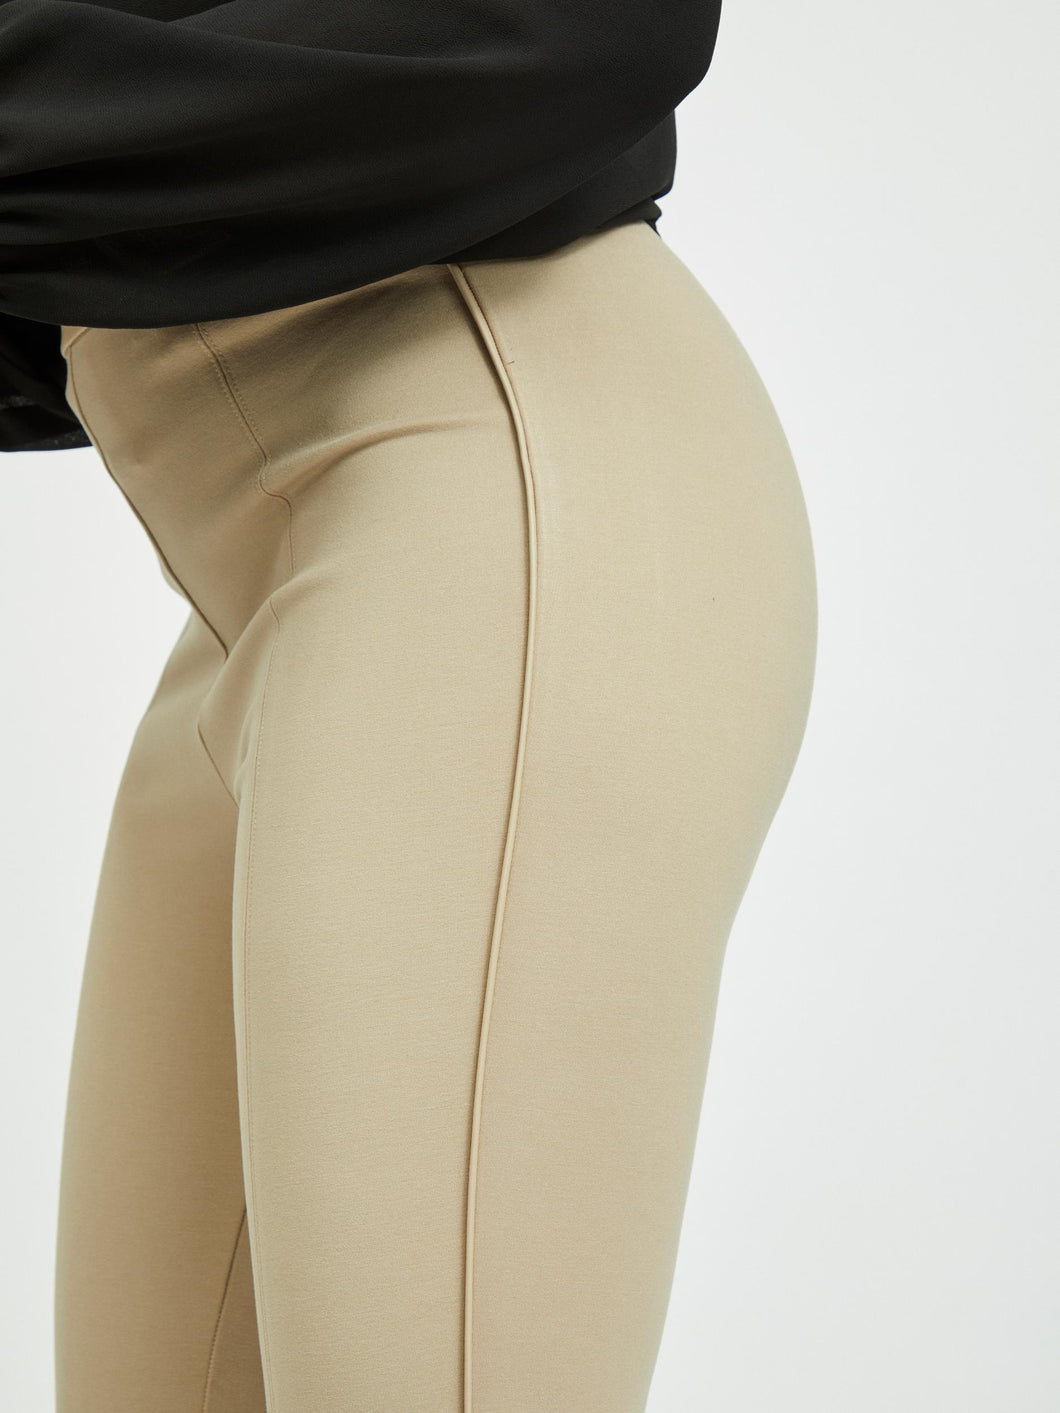 Vila – Highwaist 7/8th Leg Leggings - Beige – Valas